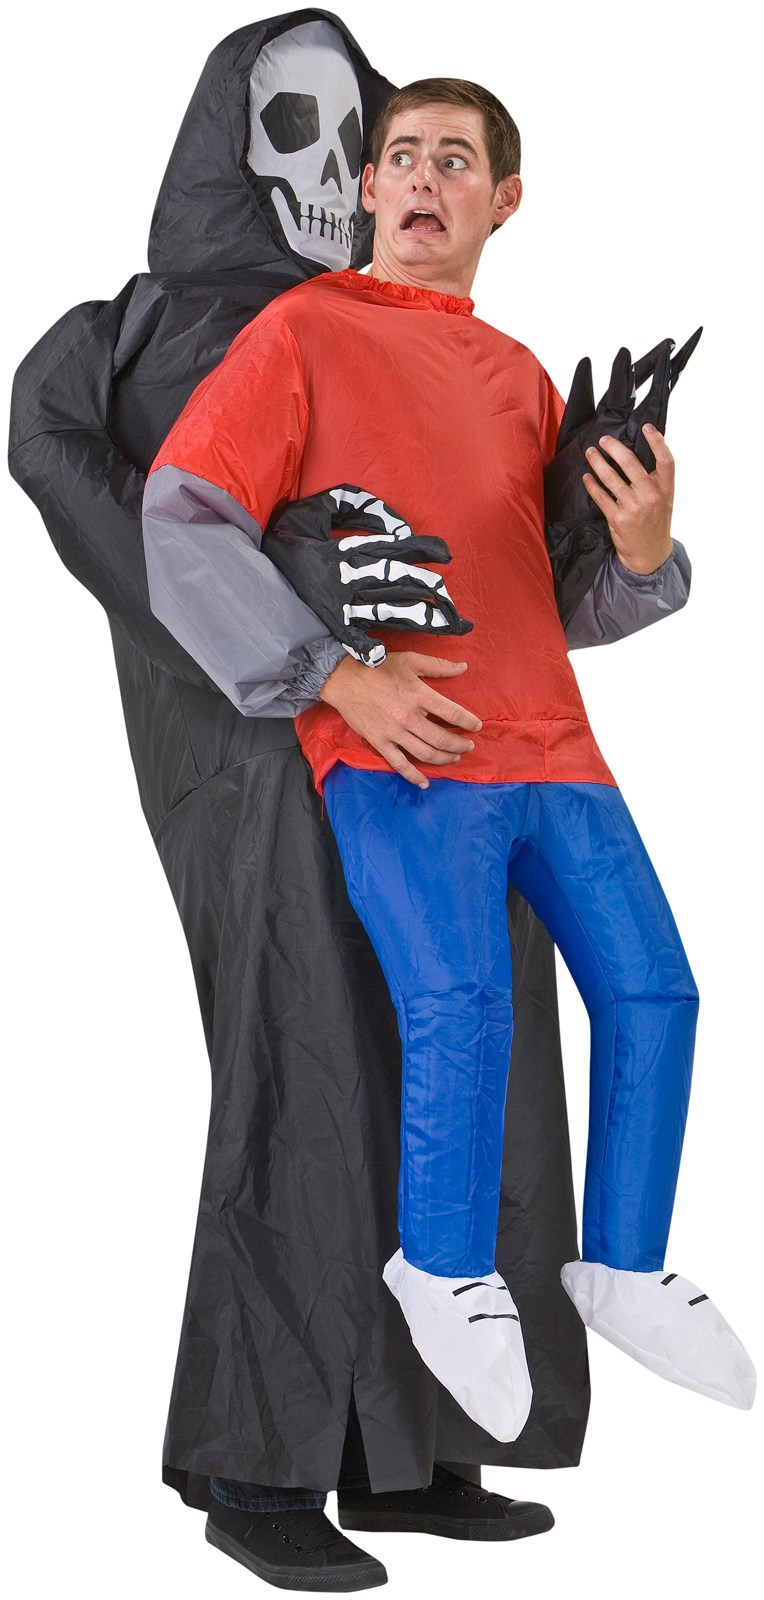 Outdoor inflatable halloween decorations - Inflatable Grim Reaper Victim Adult Costume Buycostumes Com